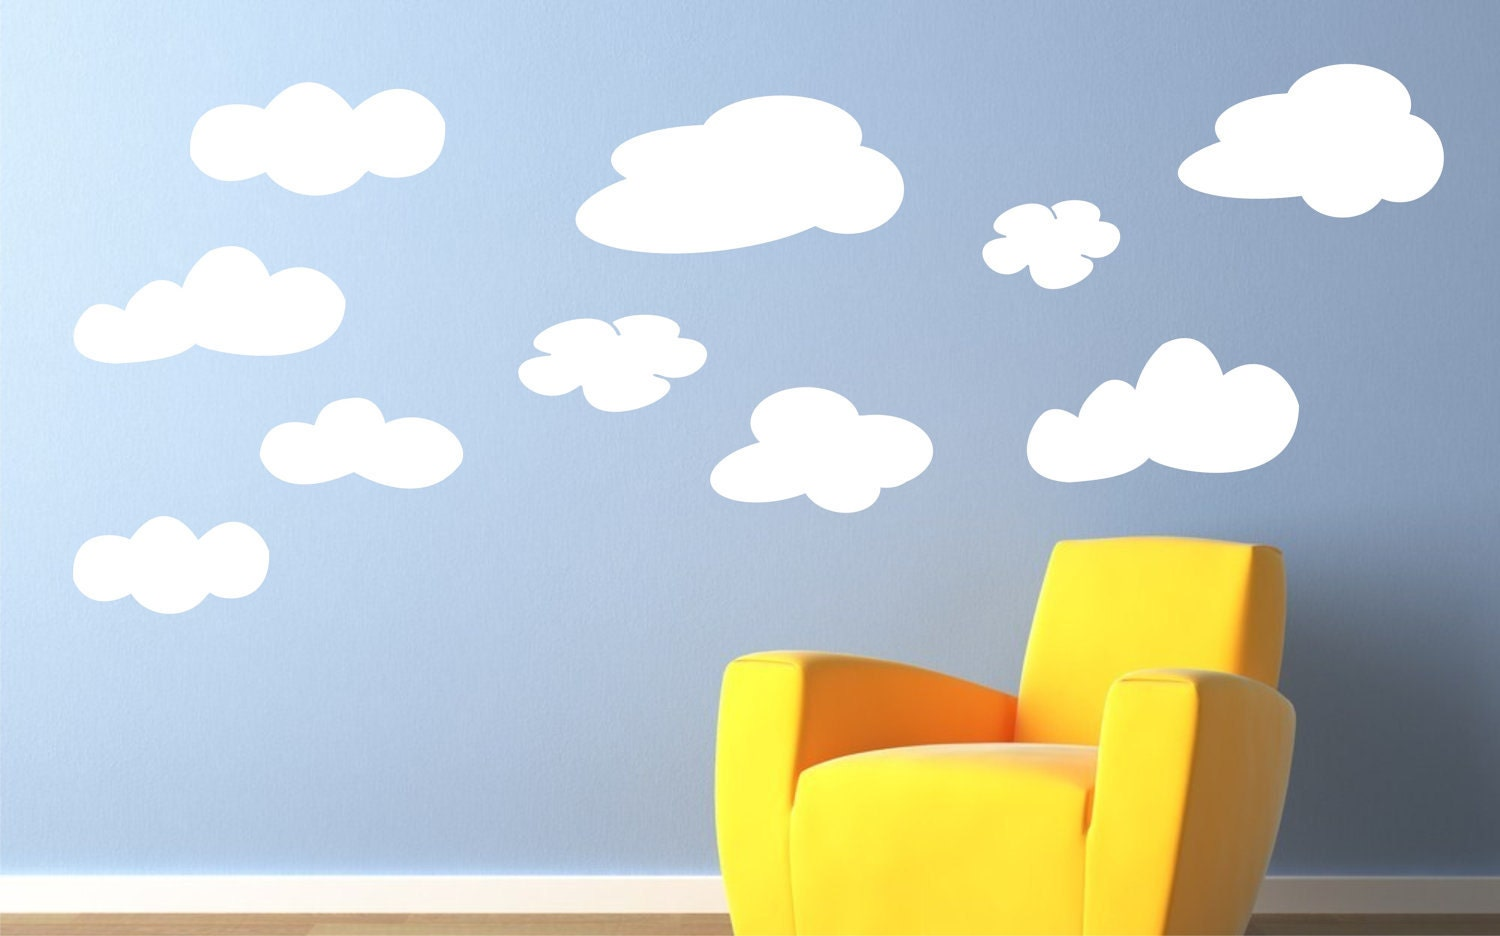 Cloud Wall Decals Cloud Decals Clouds Vinyl Wall Art - Nursery wall decals clouds